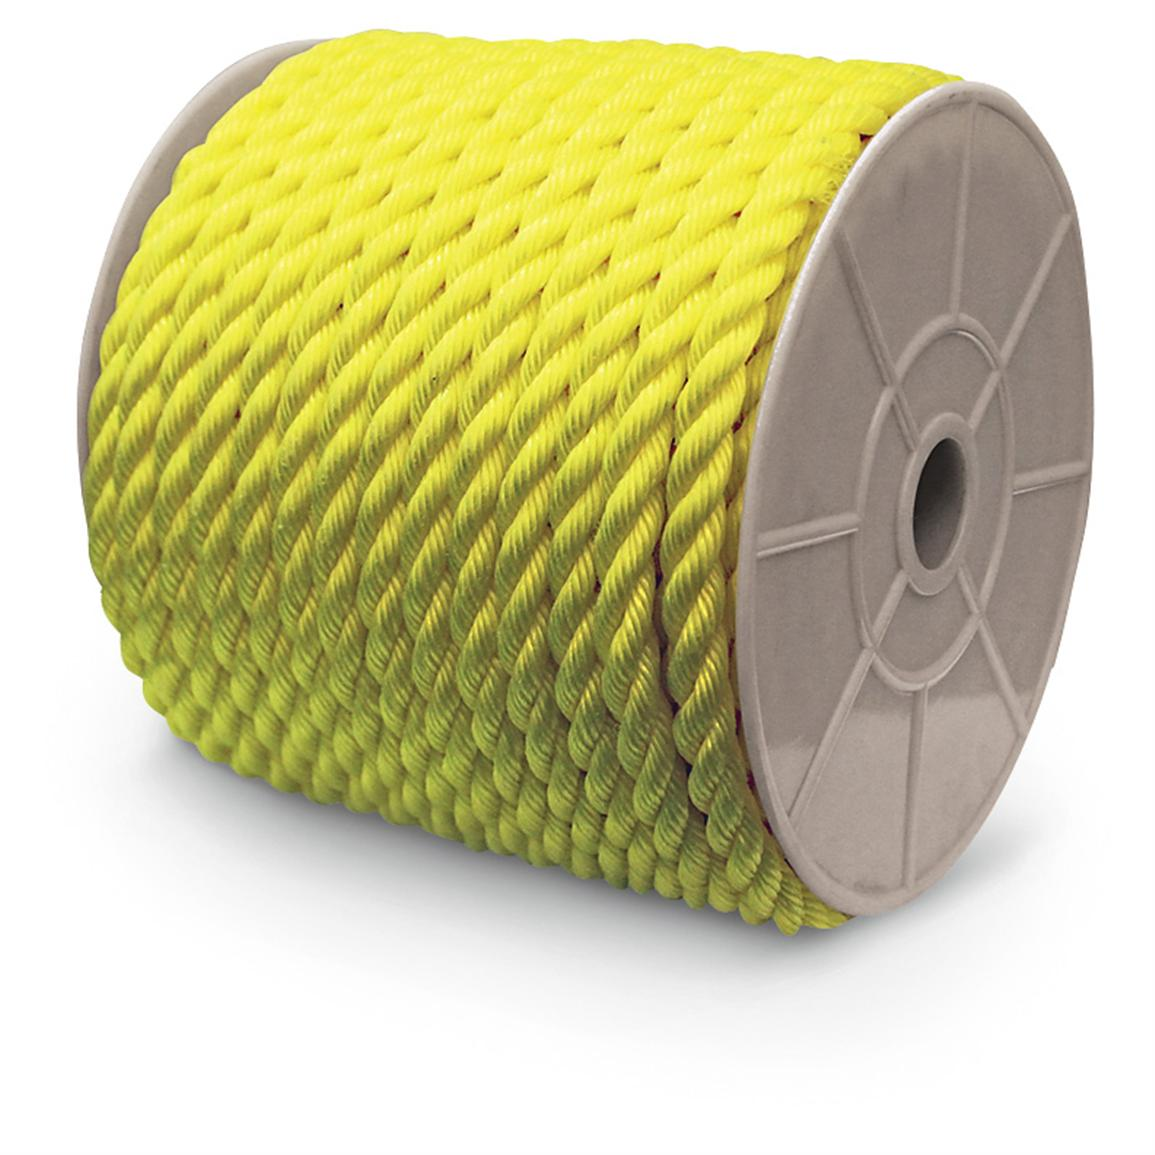 Rope King® 1,200-ft. Twisted Poly Rope, Yellow